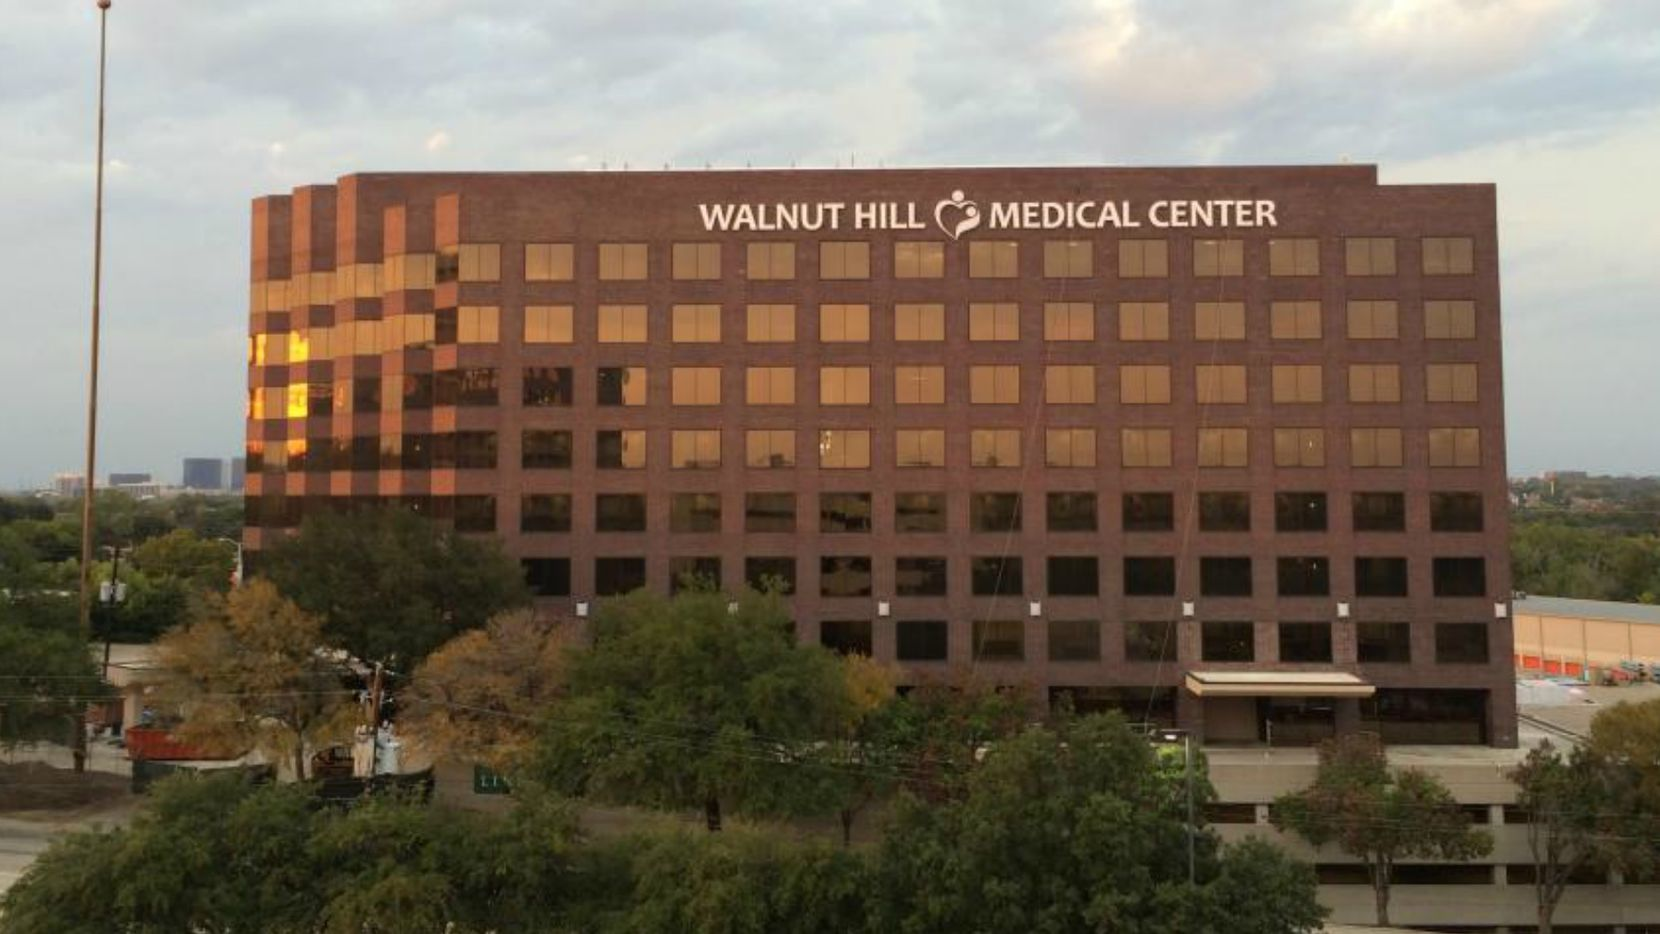 Exterior of the $100 million Walnut Hill Medical Center which opened in 2014 and filed for bankruptcy on June 6, 2017.